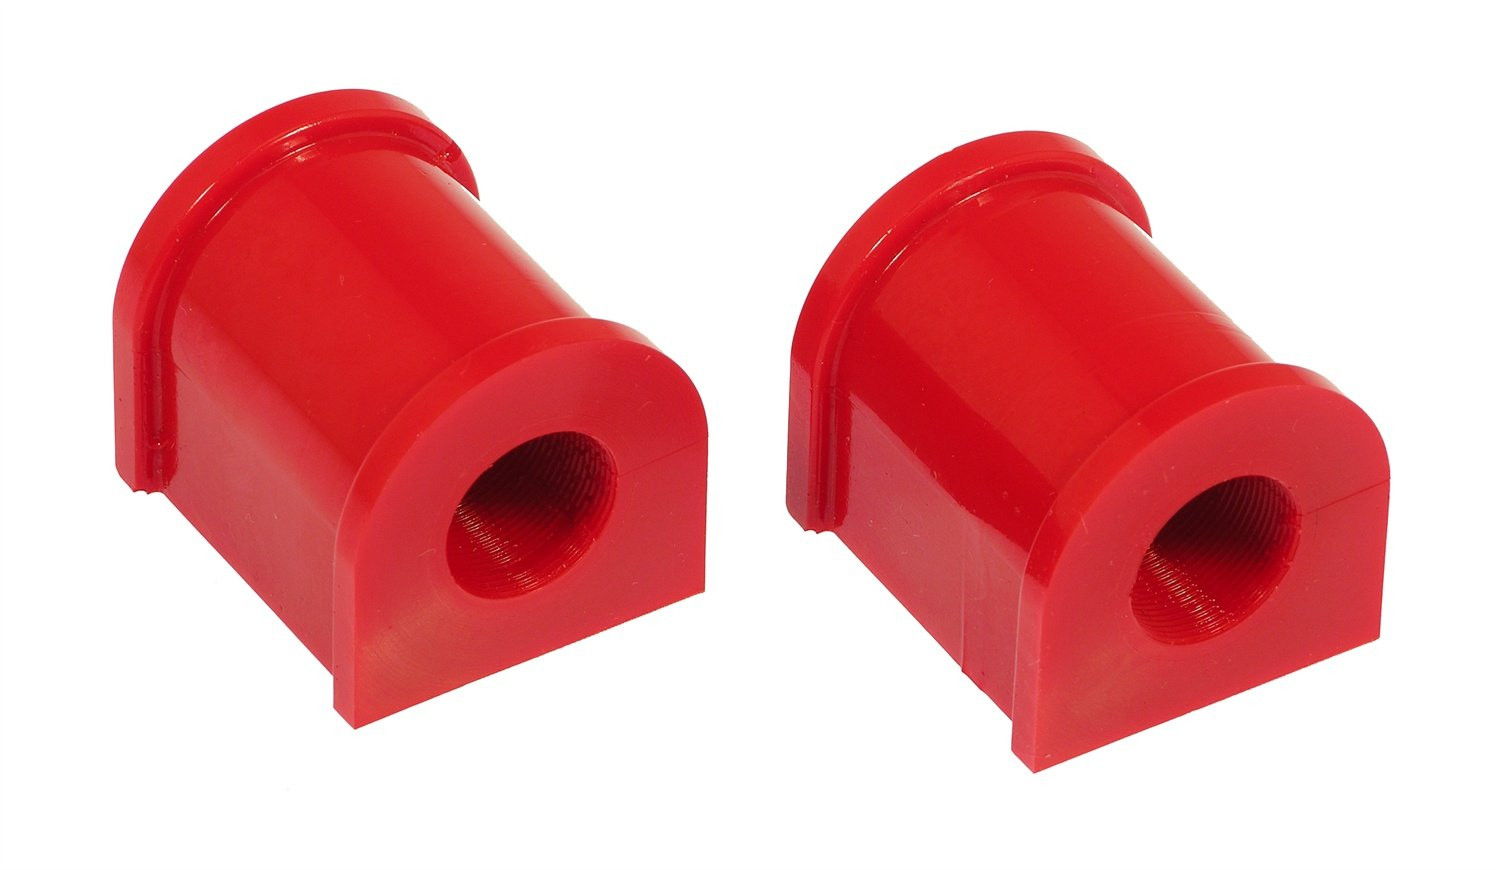 Prothane 6-1160 Red 21 mm Rear Sway Bar Bushing Kit